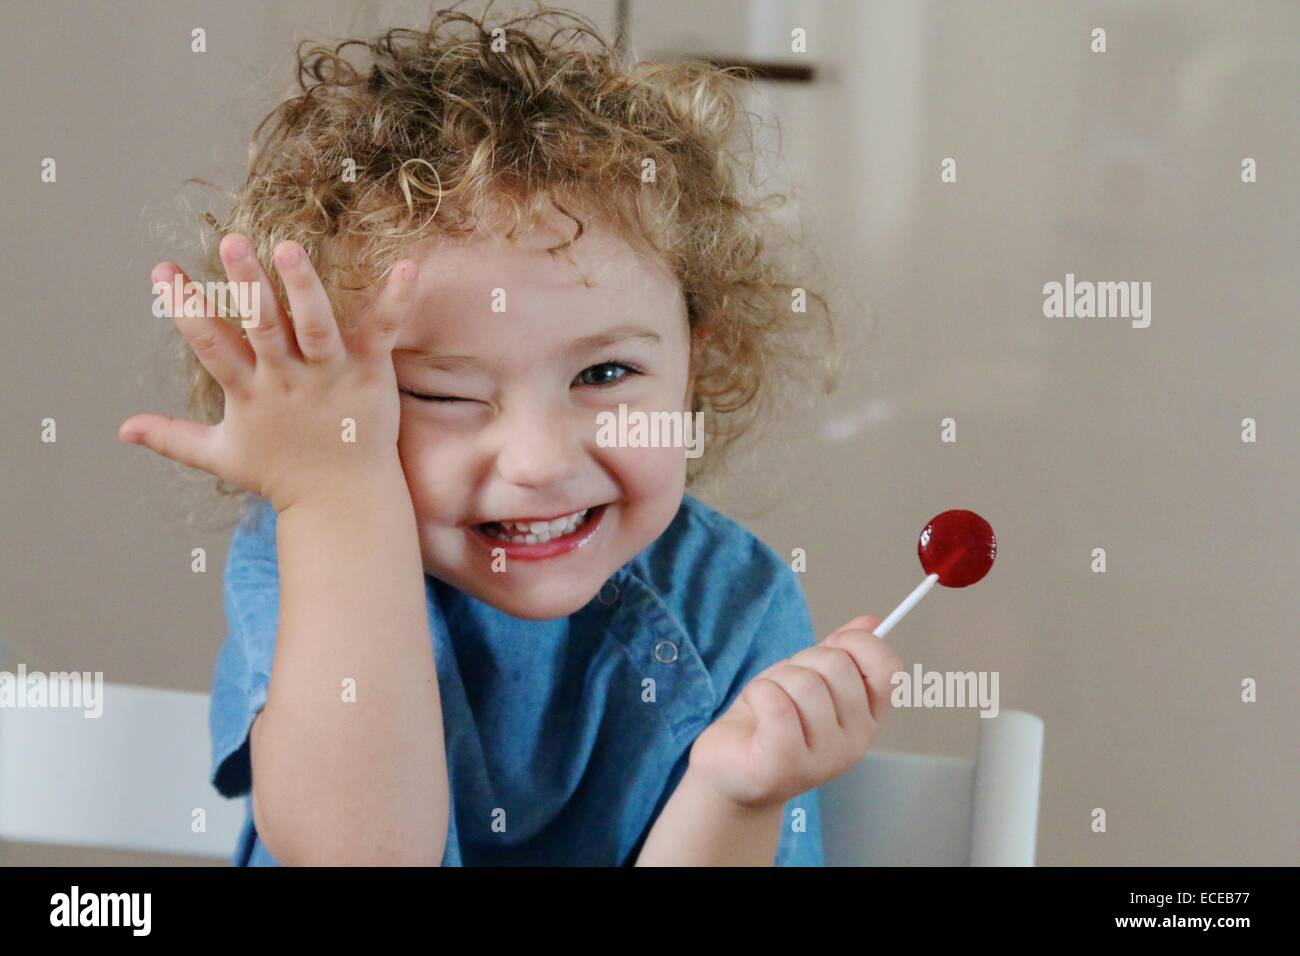 Happy girl eating a lollipop and touching her face Stock Photo